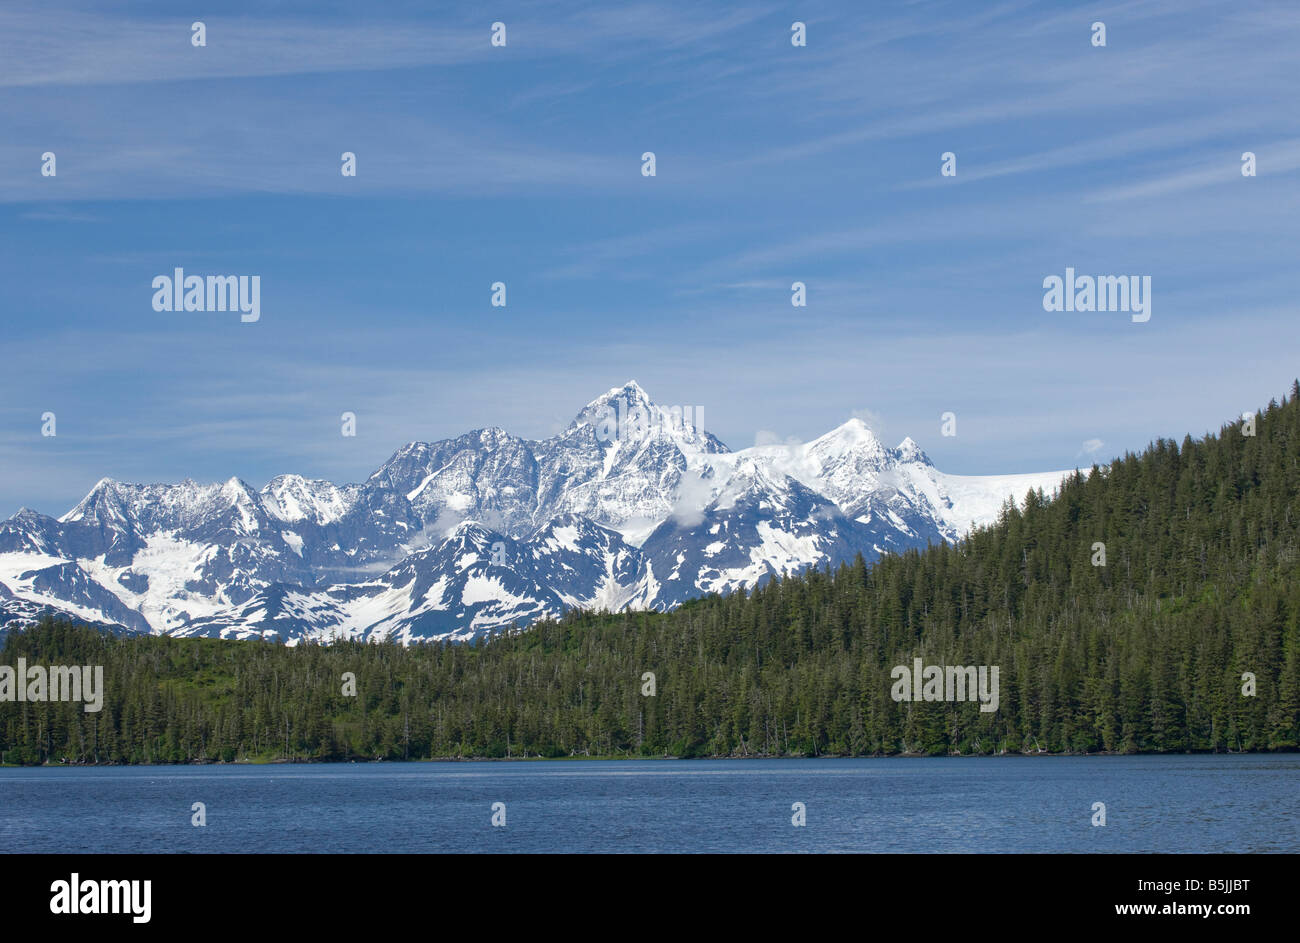 Scenic of Chugach Mountains, Prince William Sound, Alaska - Stock Image